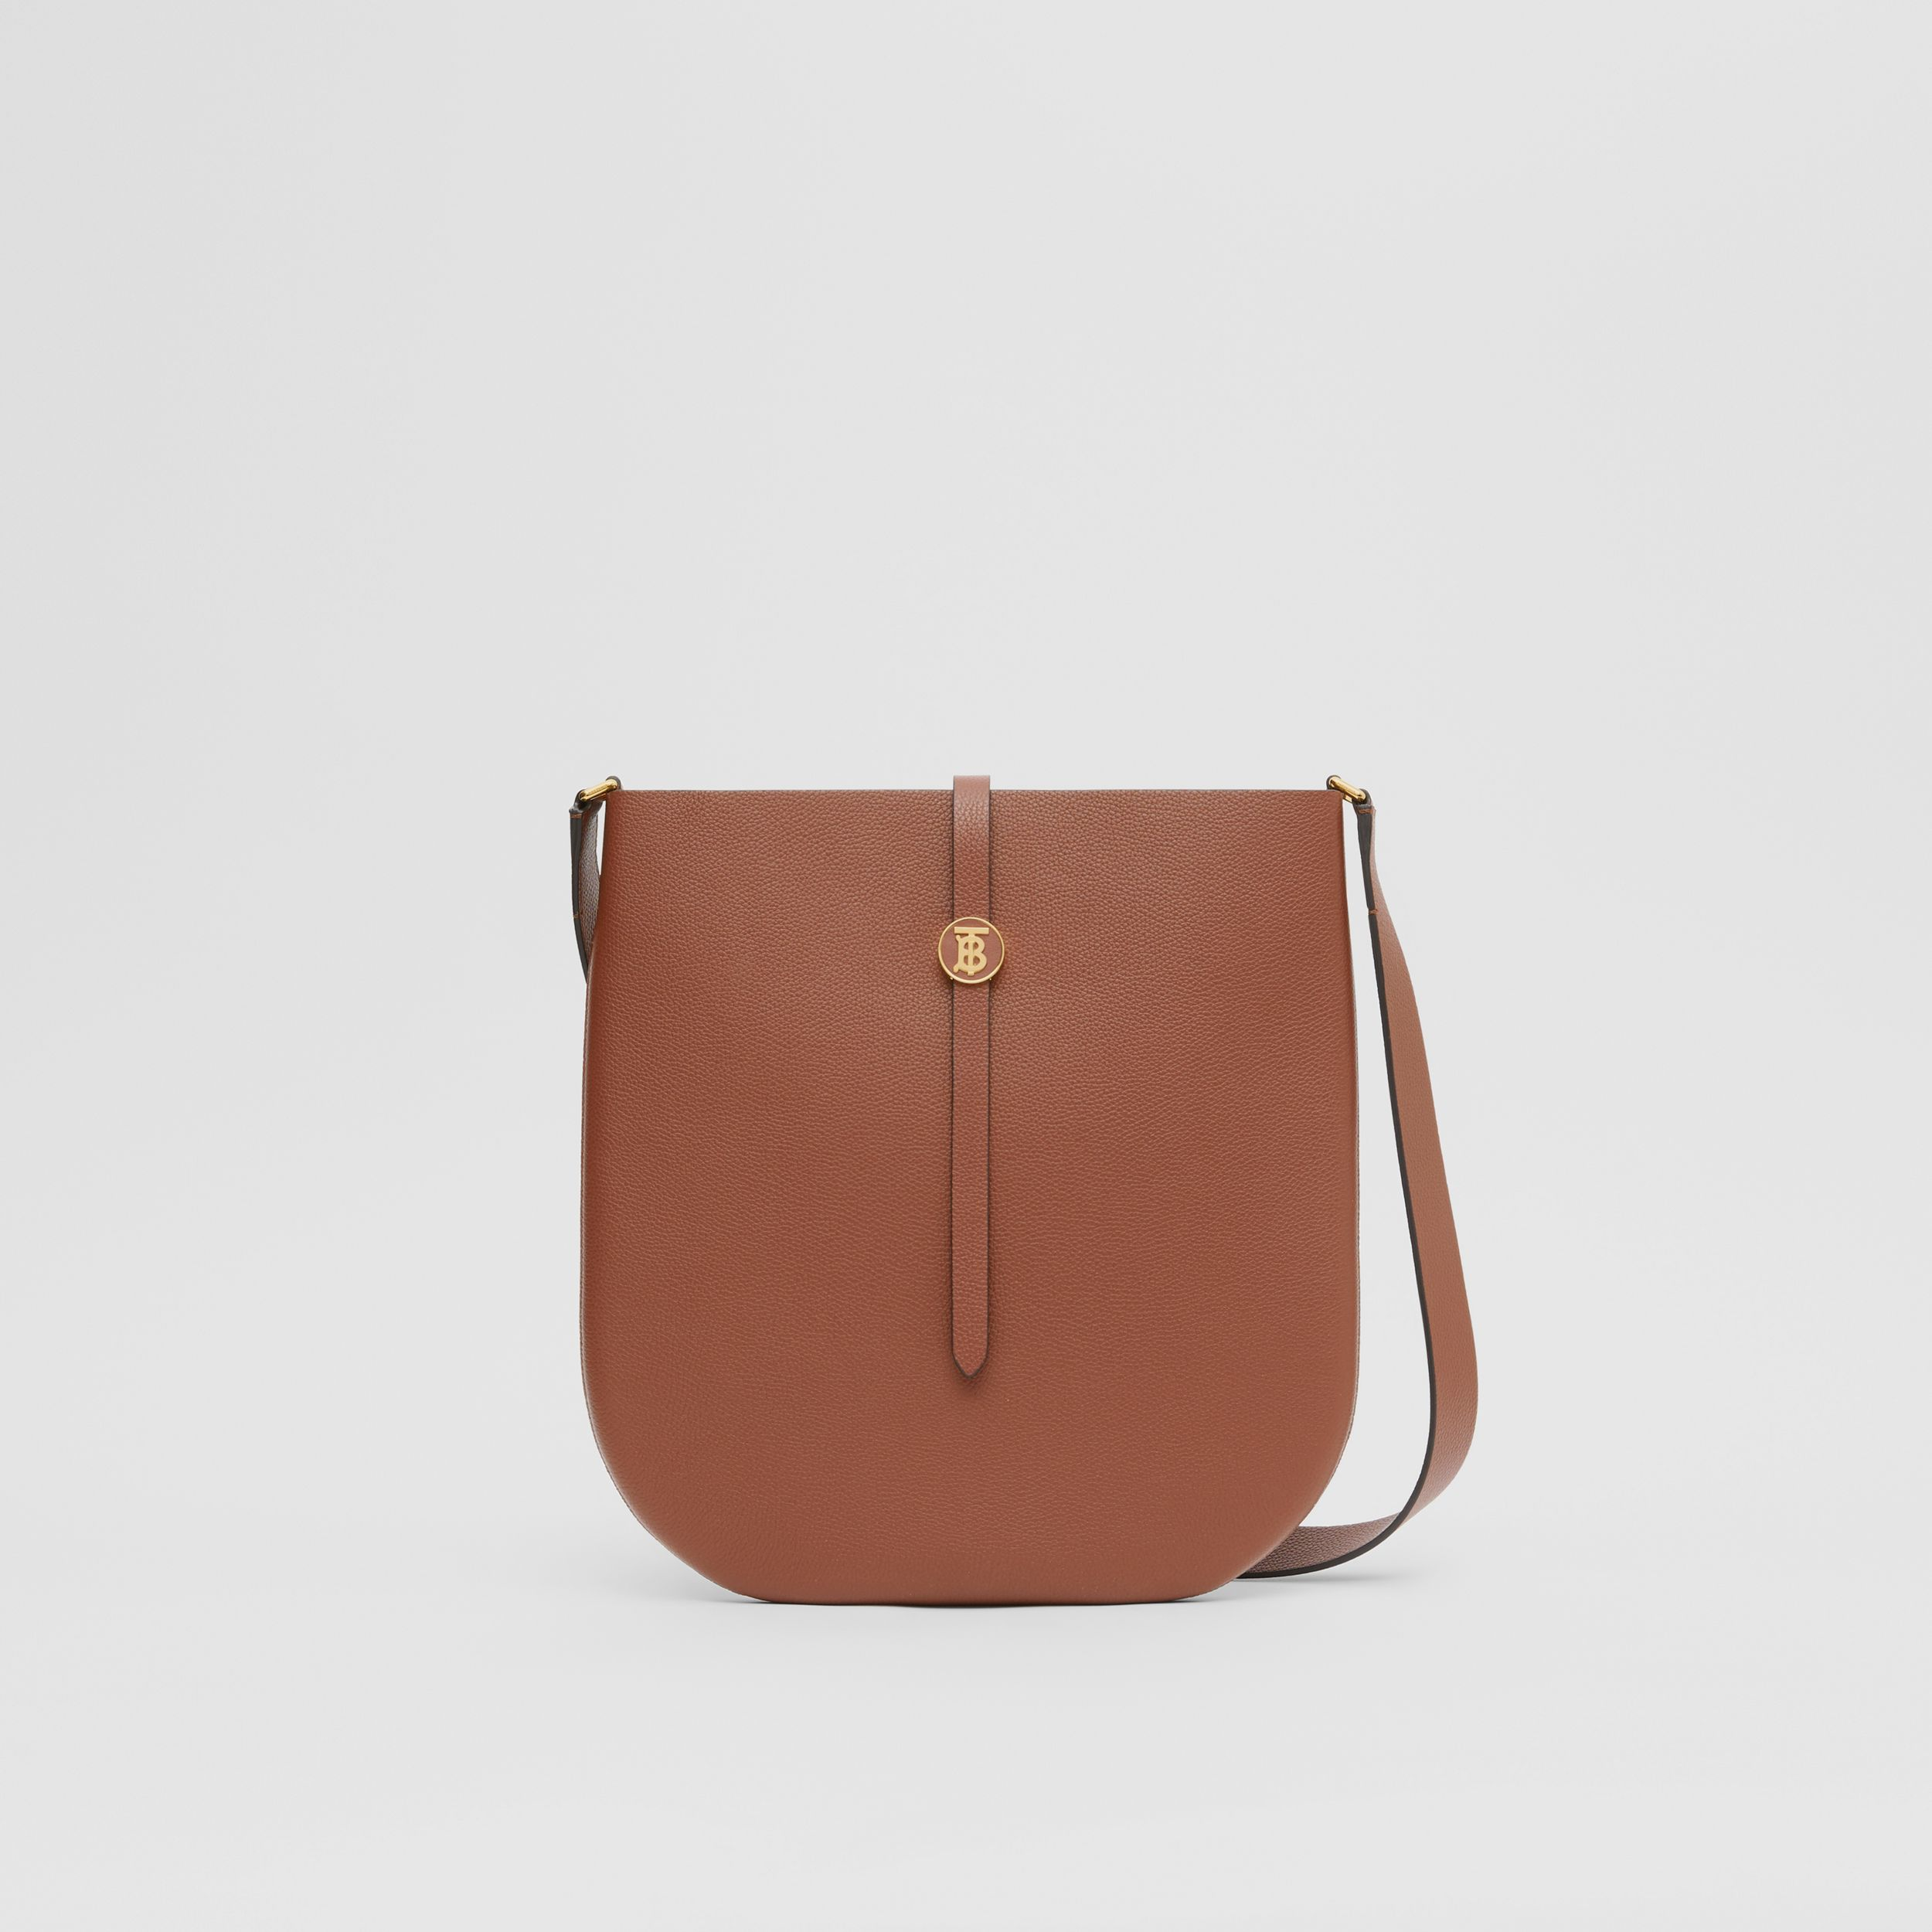 Grainy Leather Anne Bag in Tan - Women | Burberry - 1